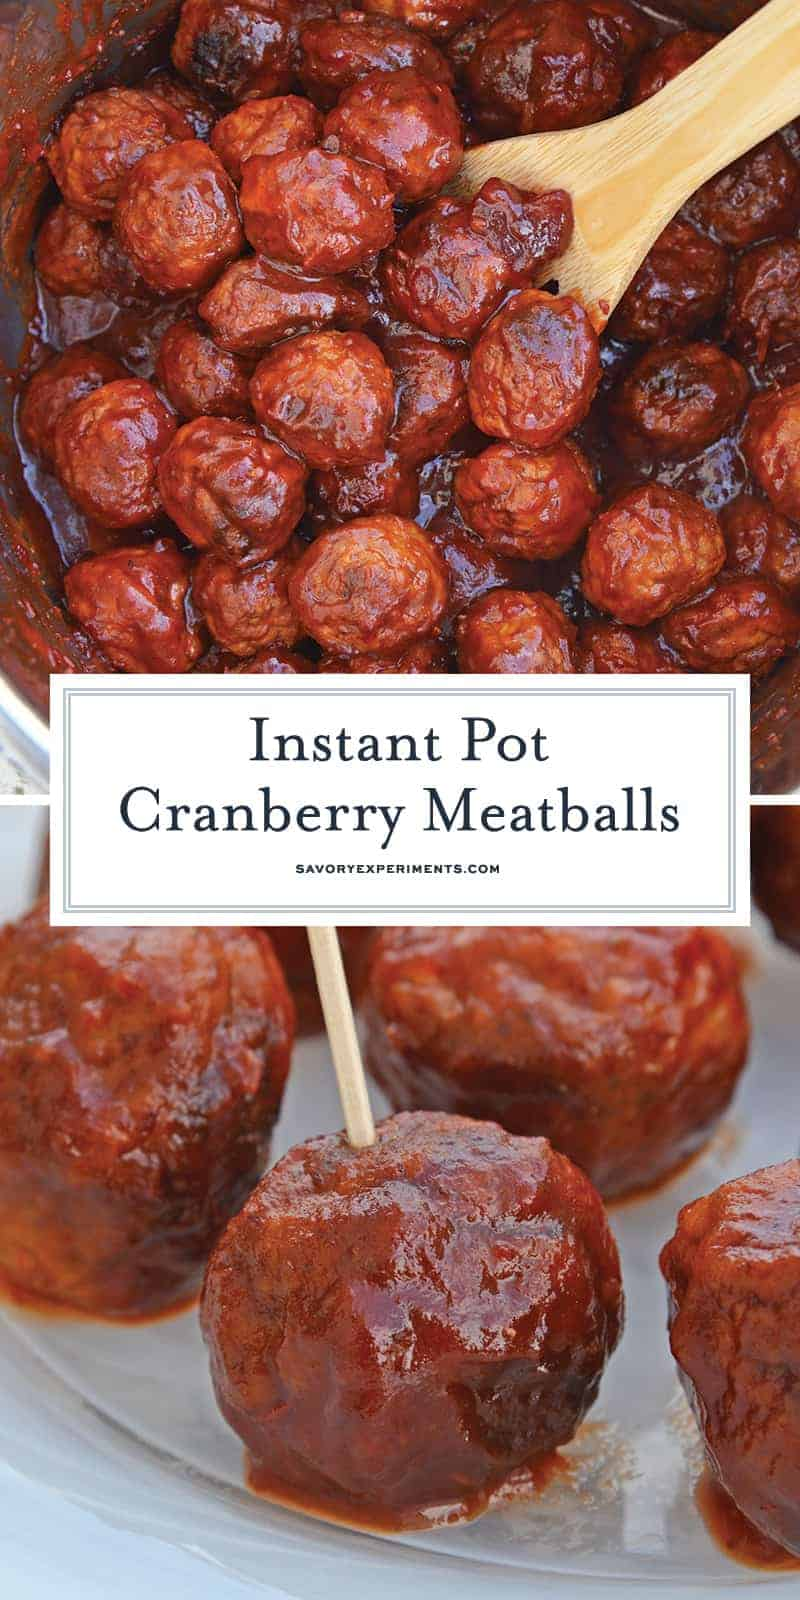 These Cranberry Chili Meatballs, made with only 4 ingredients, will become your go-to cocktail meatballs recipe! The perfect appetizer for any gathering! #partymeatballs #instantpotmeatballs #cocktailmeatballs www.savoryexperiments.com